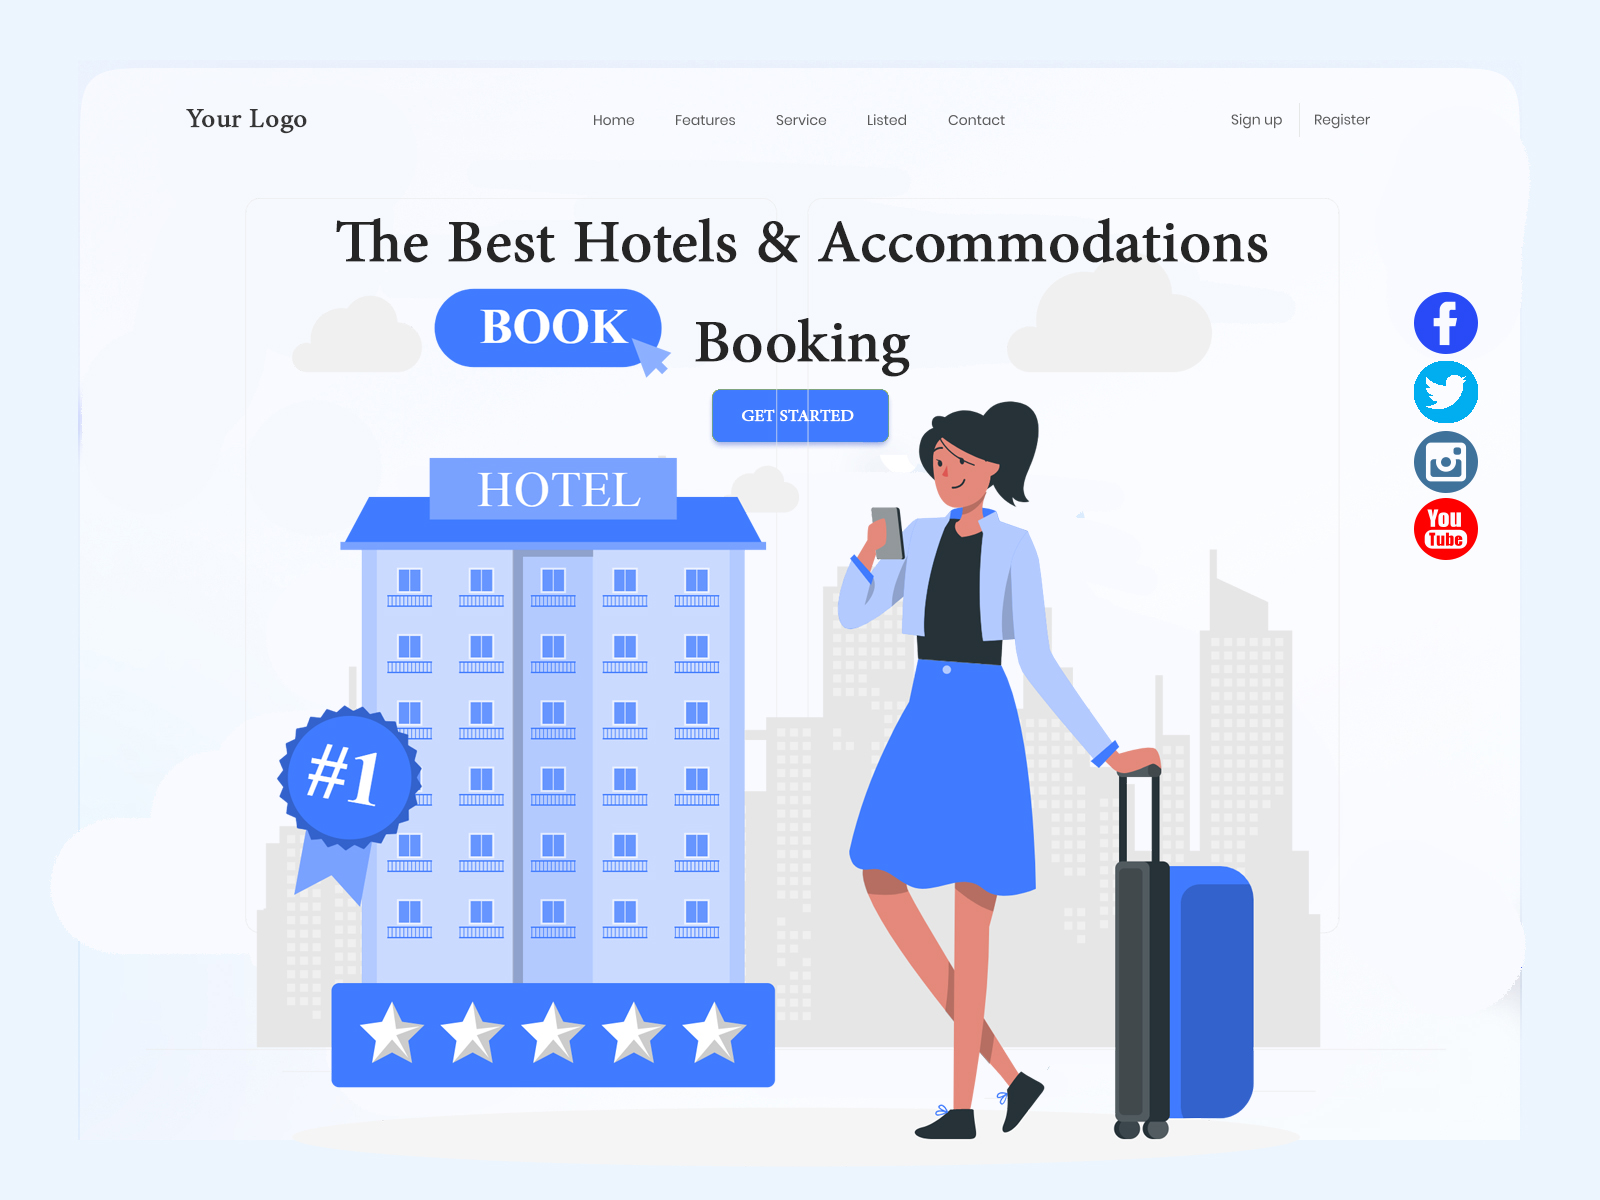 Hotel Booking Homepage cover image